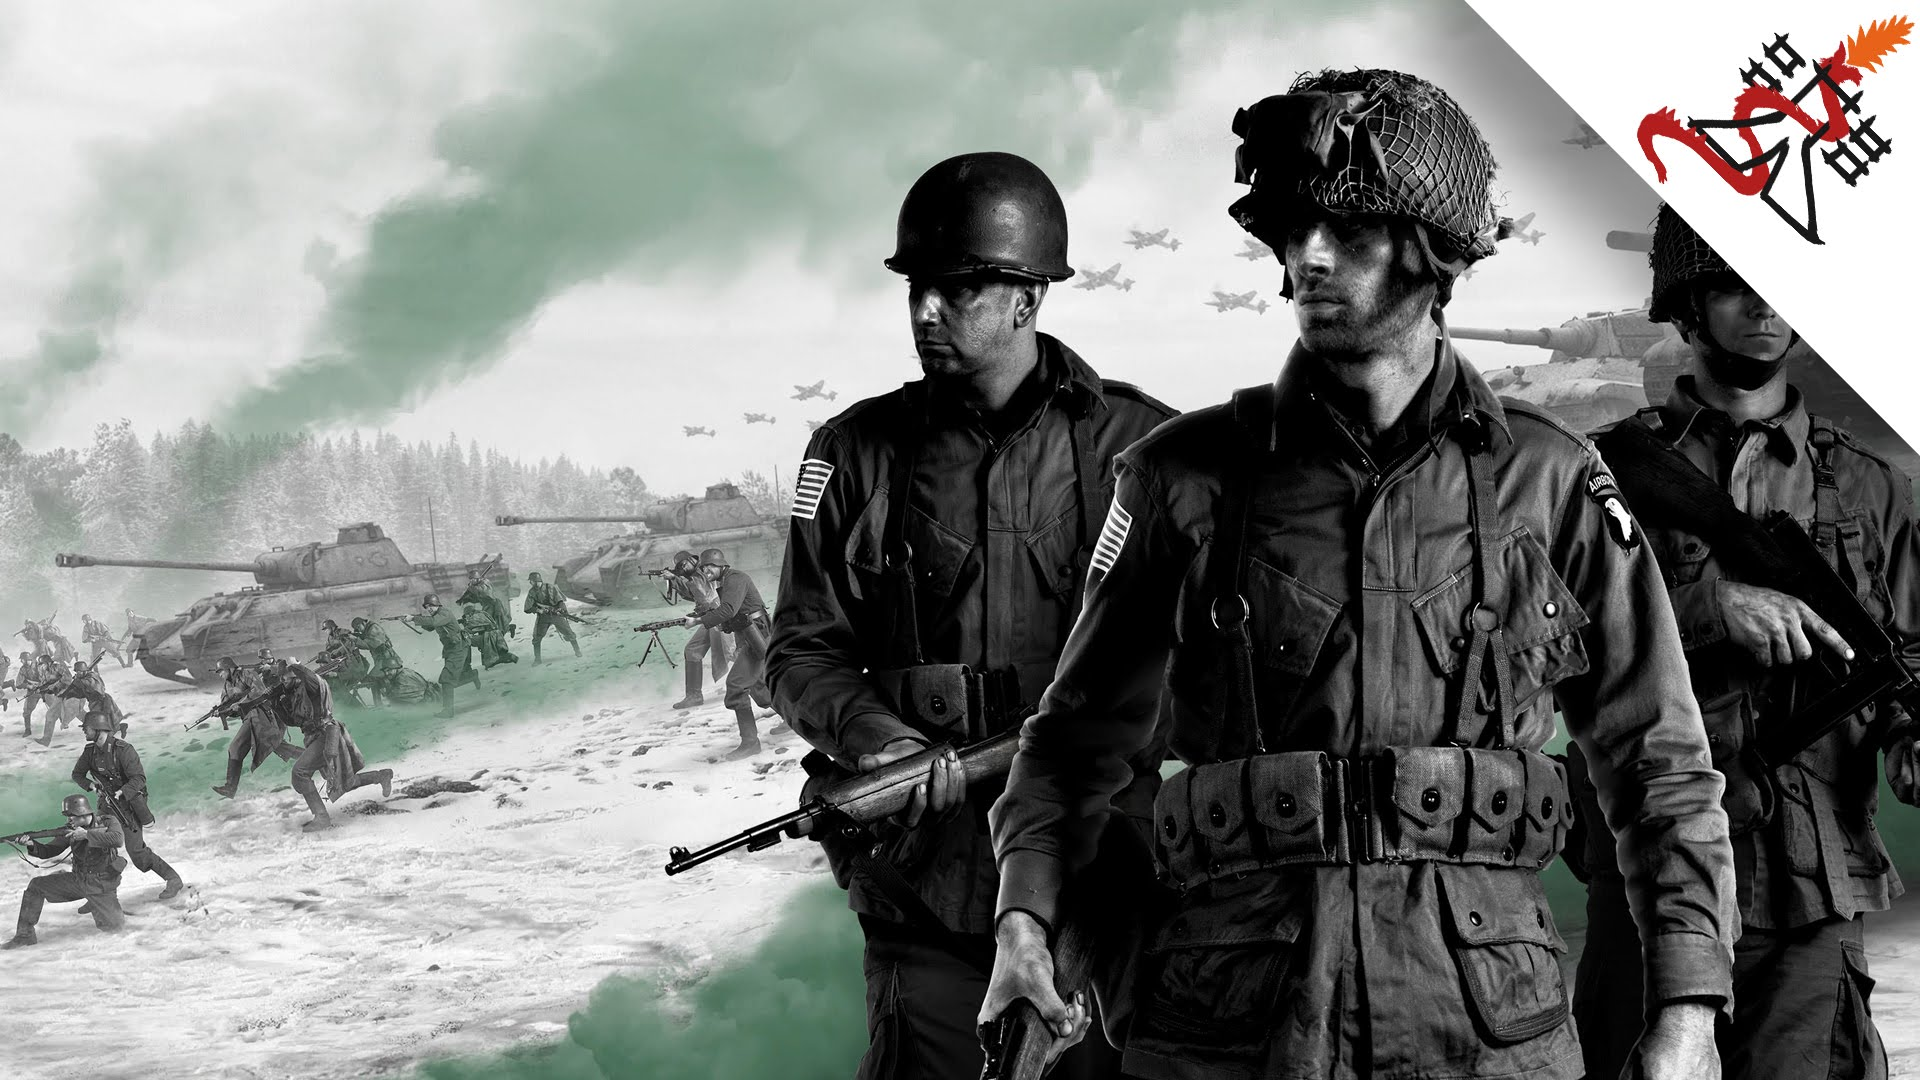 Free Download Company Of Heroes 2 Hd Wallpapers And Background